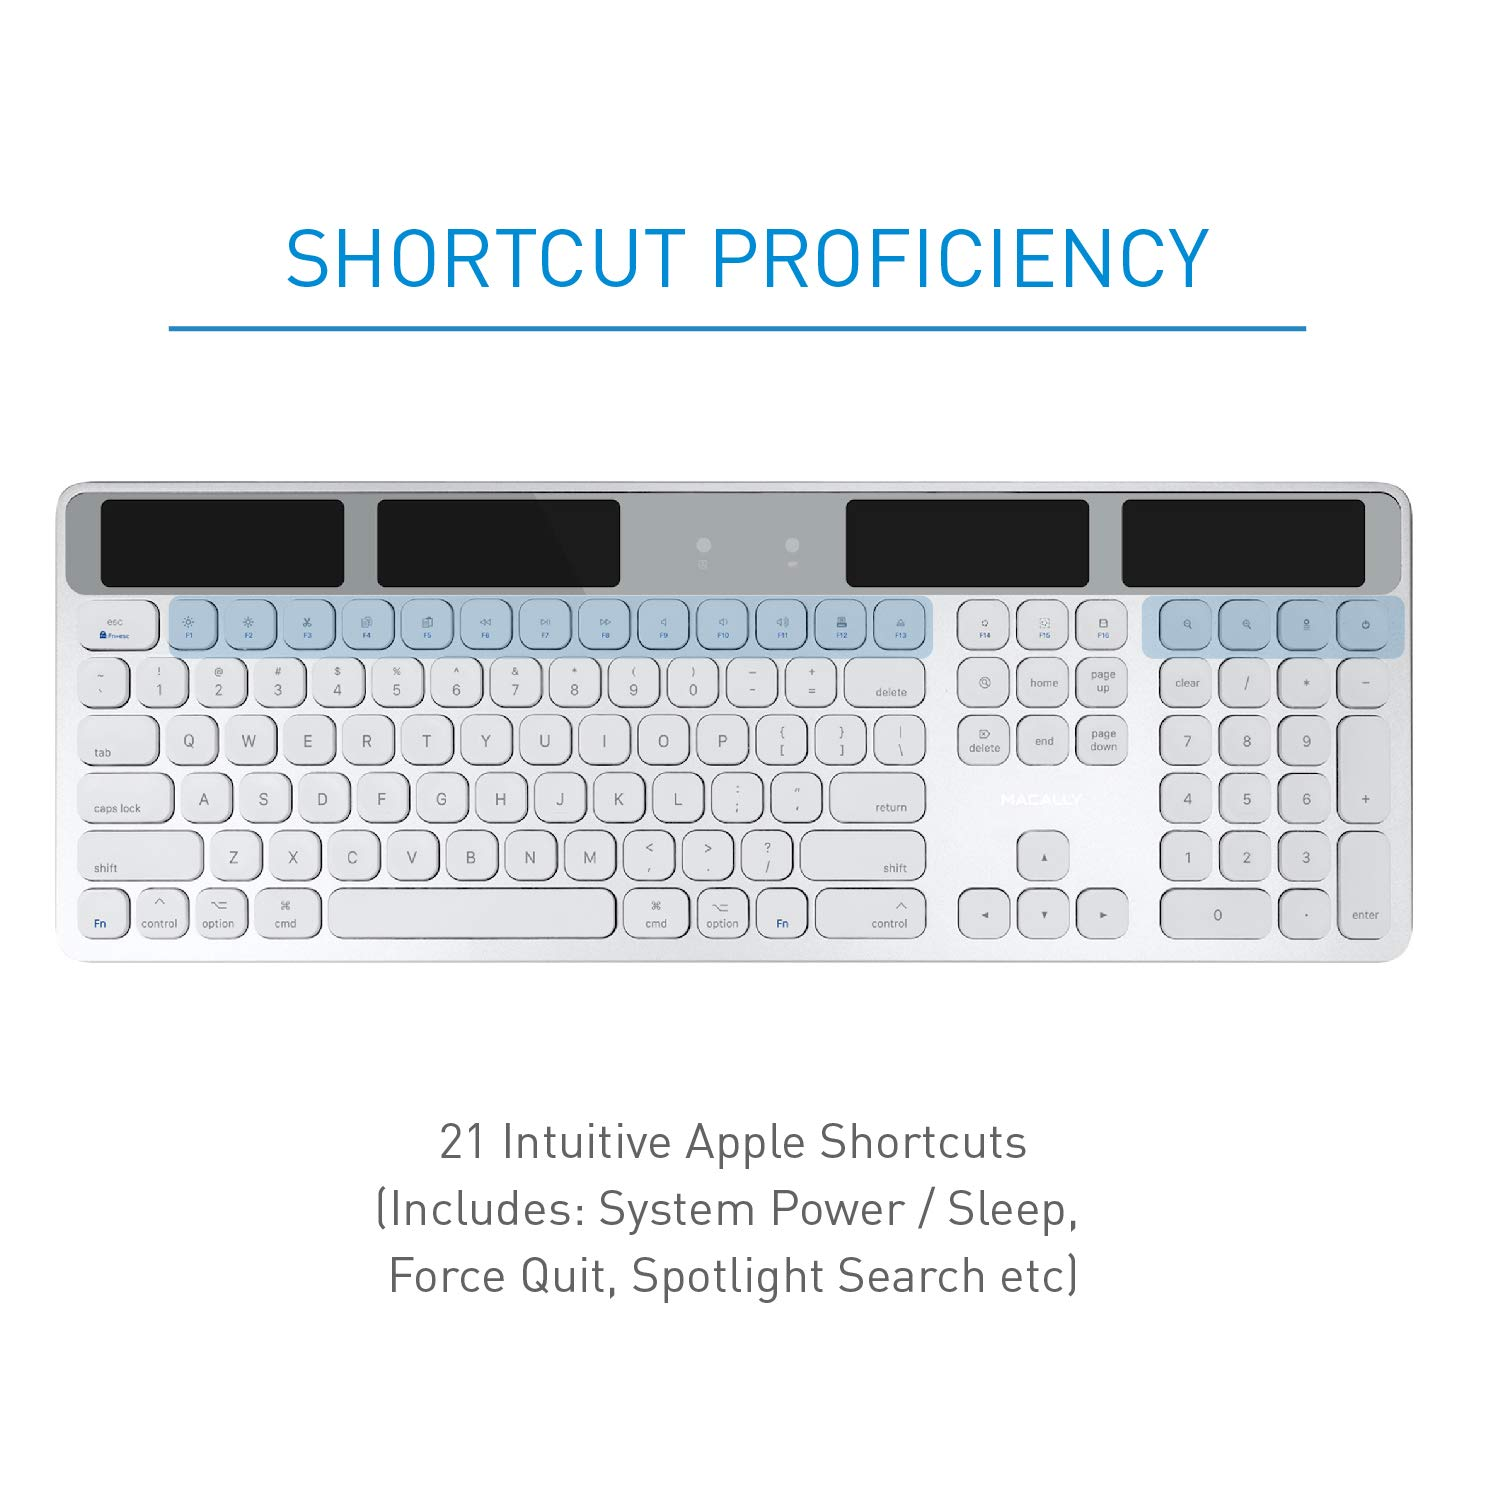 Macally Wireless Solar Keyboard for Mac Mini/Pro, iMac Desktop Computers & Apple MacBook Pro/Air Laptops | 2.4 Ghz RF USB Dongle | Caps Lock/Battery Indicators - Silver Aluminum, Gray by Macally (Image #4)